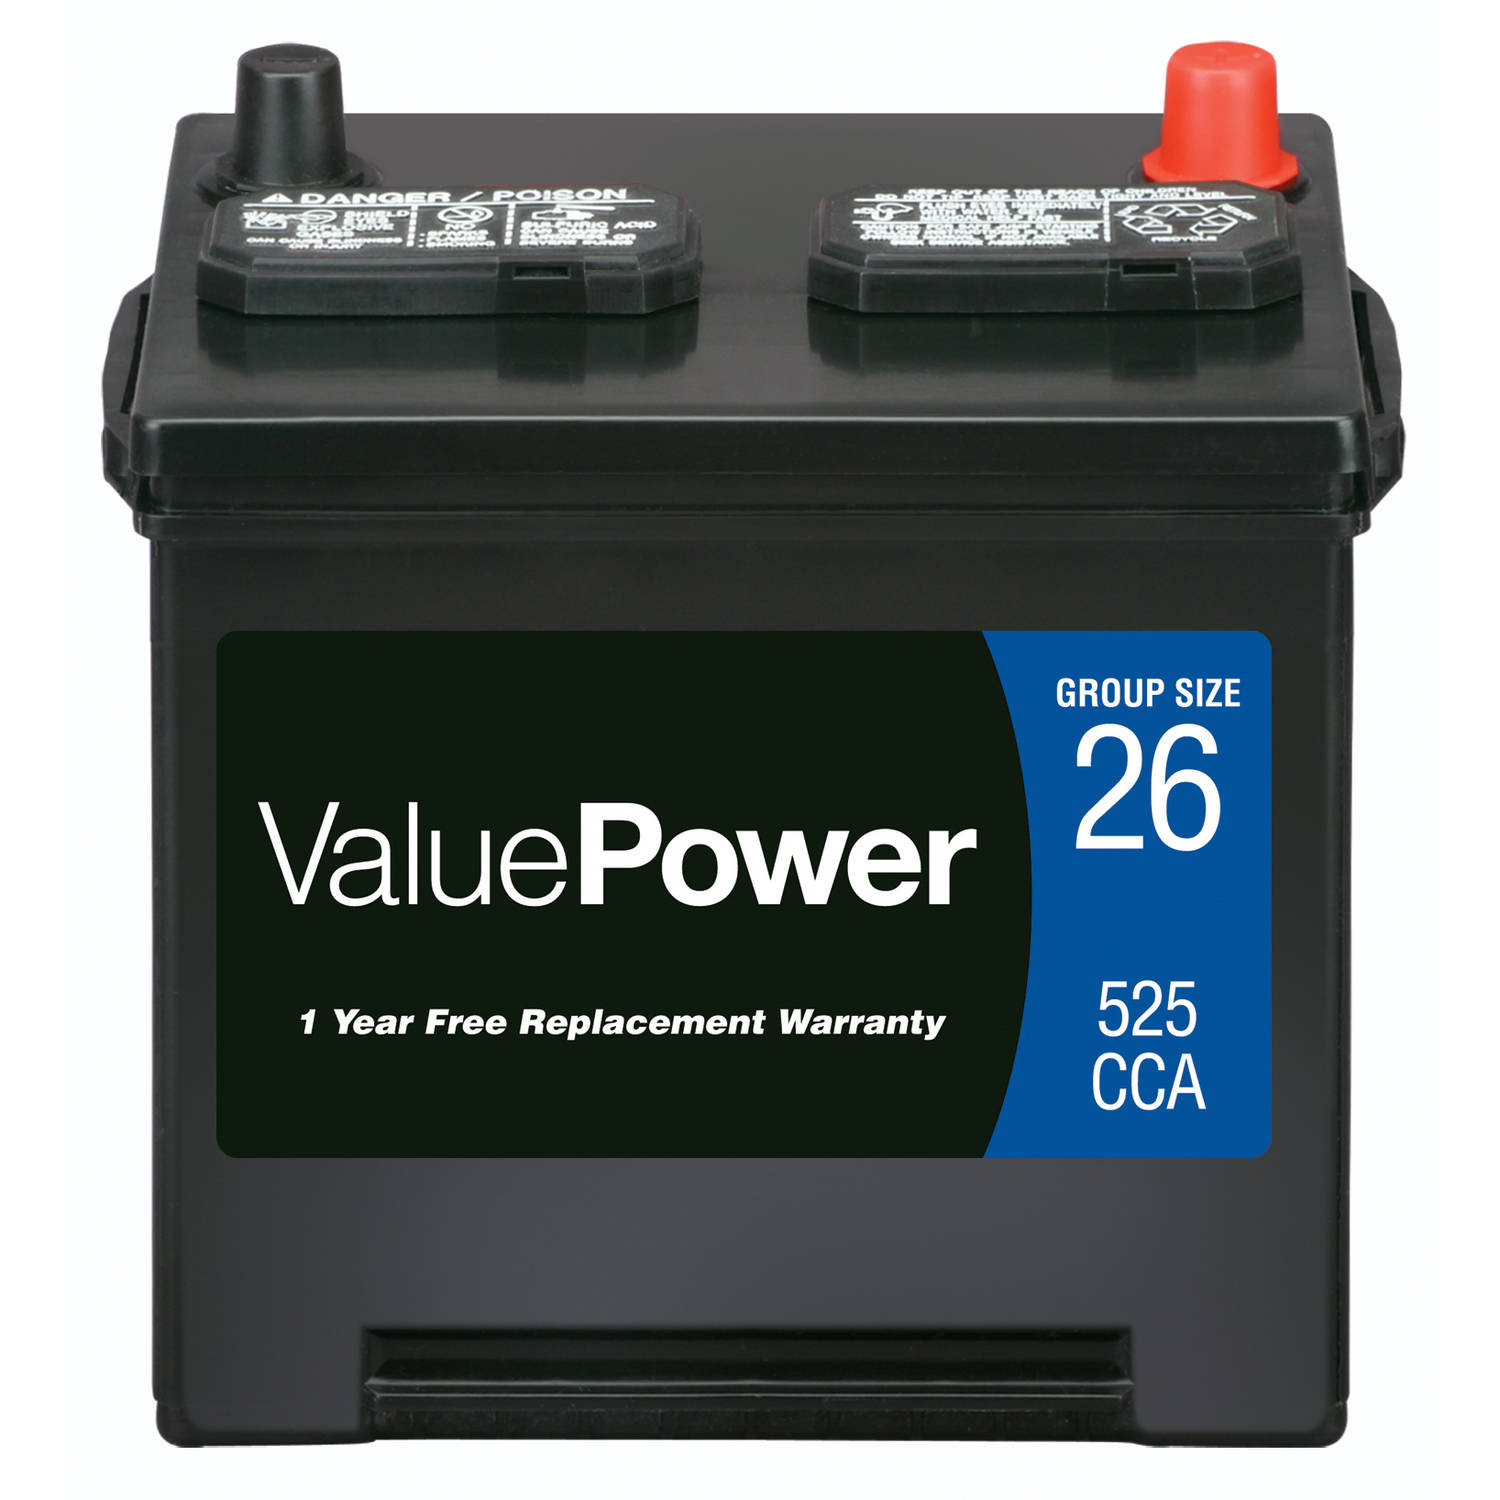 ValuePower Lead Acid Automotive Battery, Group 26